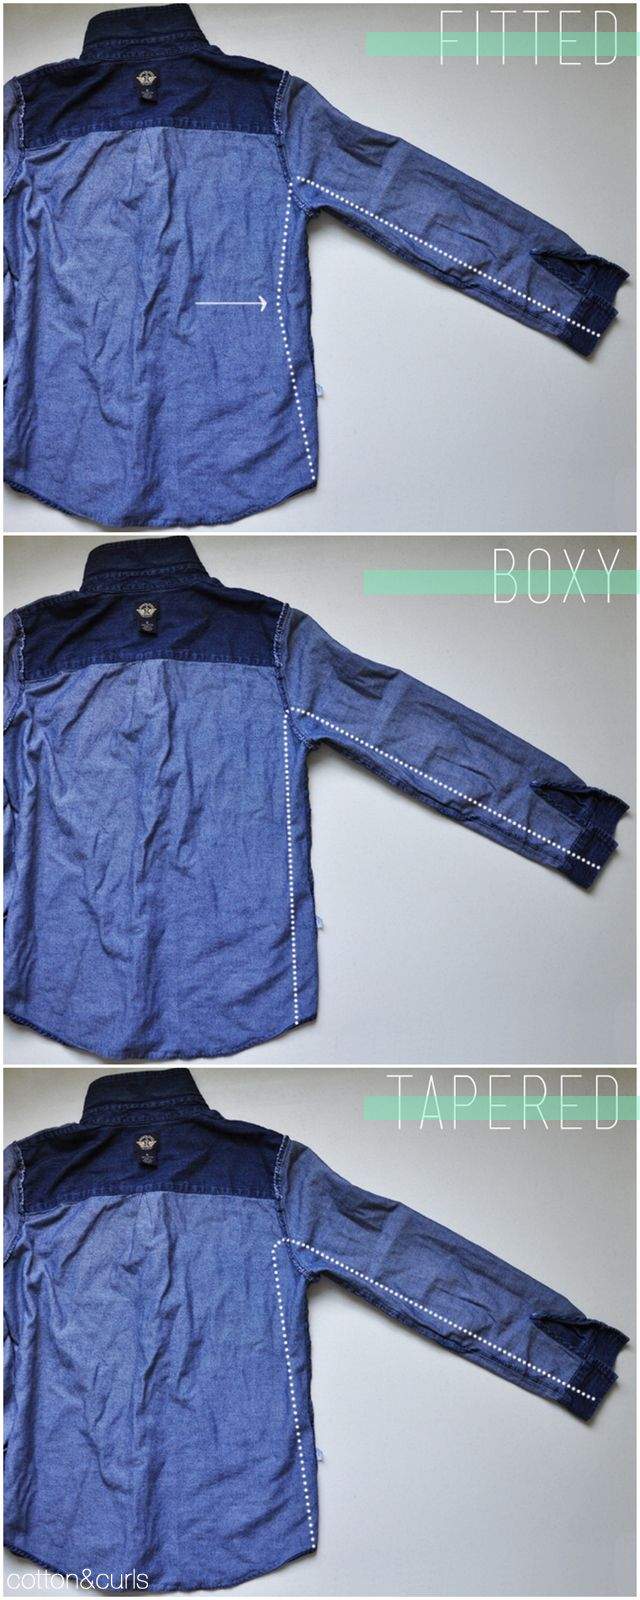 C: 3 ways to revamp a button up shirt  FITTED  BOXY  TAPERED    Instructions:   1. Try on inside out.  2. Mark what needs to be taken in. Use one of pictures below for your guide.  3. Pin flat.  4. Sew along the markings.  5. Cut out excess fabric leaving half inch.  6. Serge raw edges (or use zig zag stitch).  7. Iron.